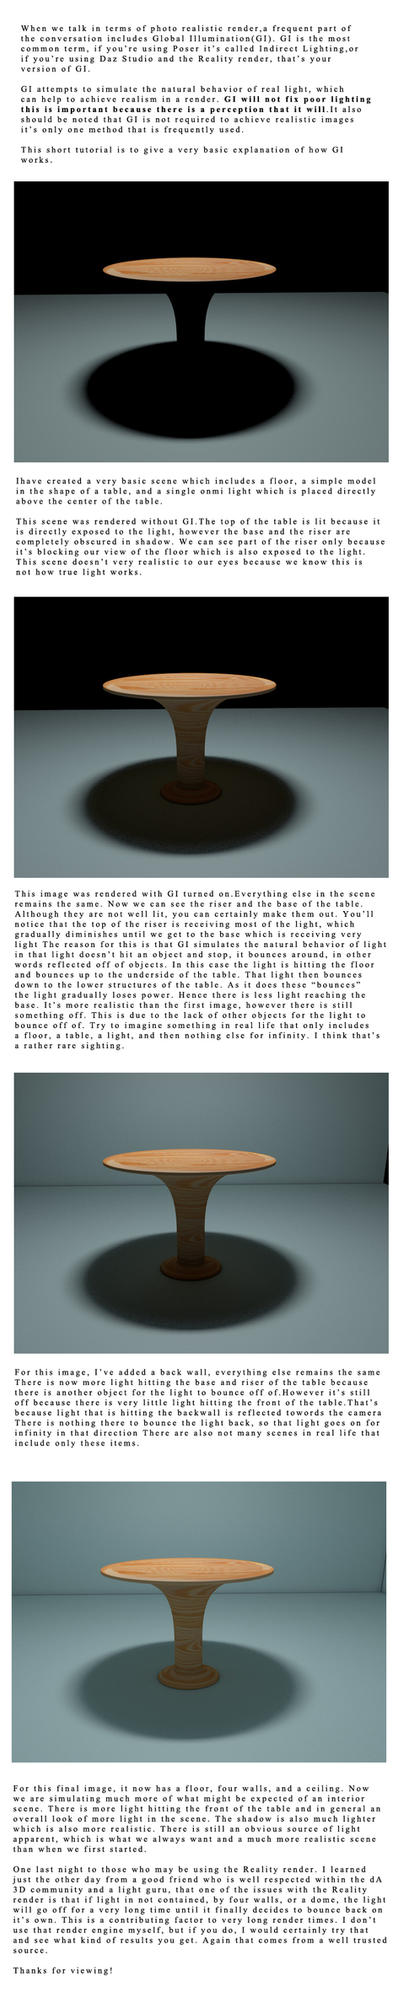 A basic intro to Global Illumination by 3dstage